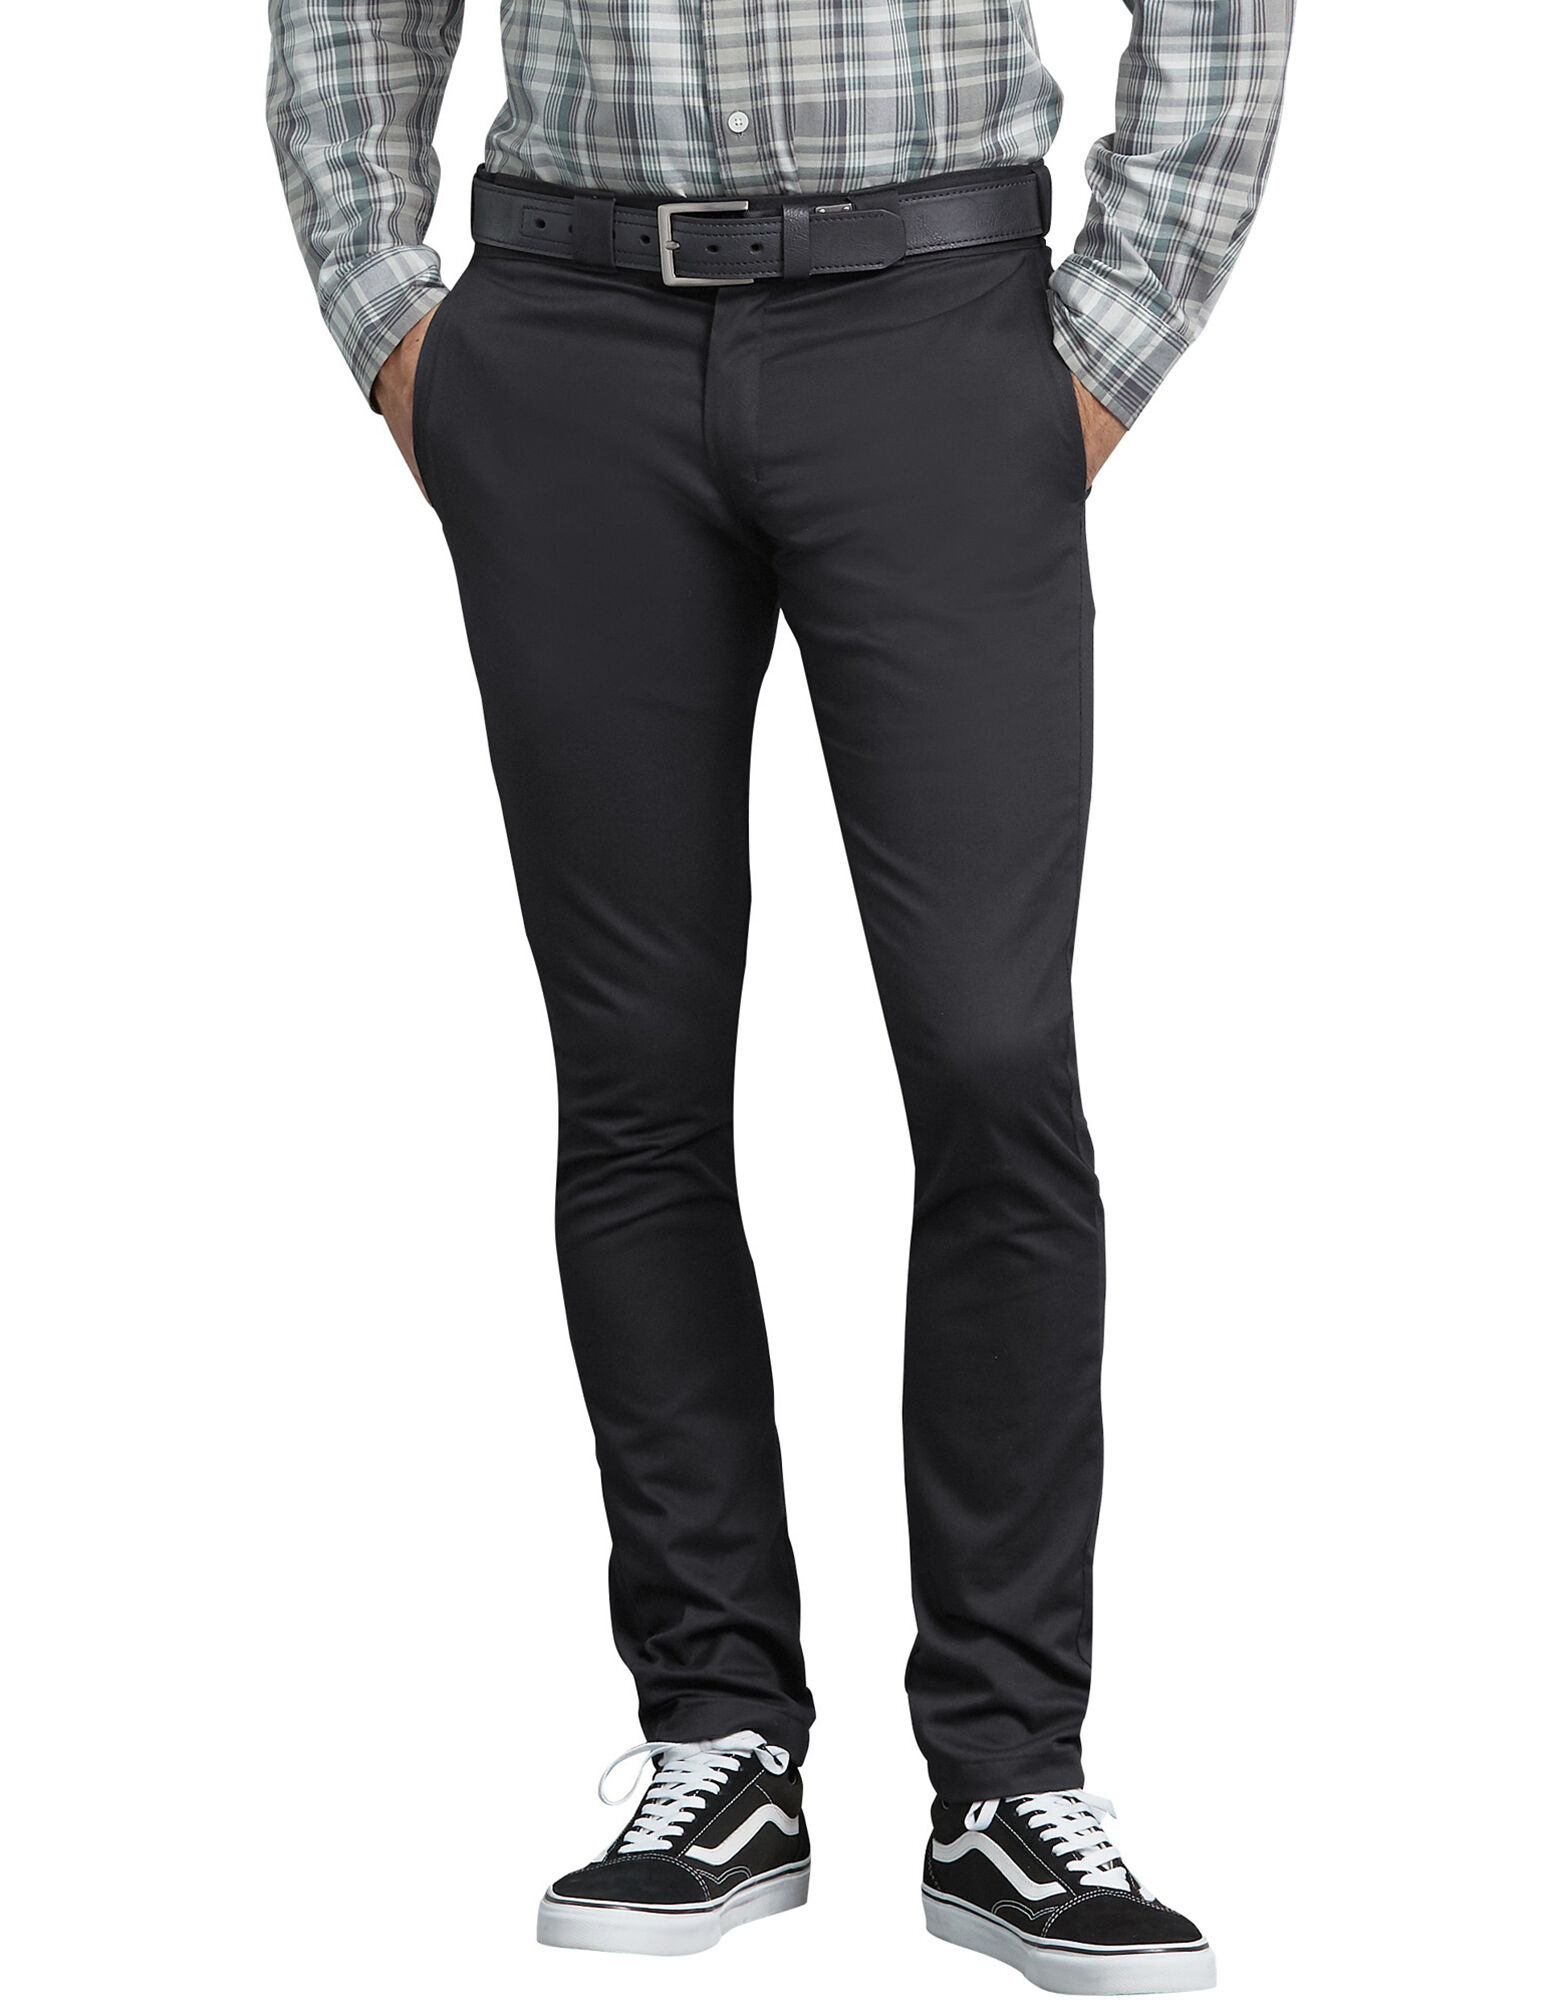 Find great deals on eBay for skinny black dress pants. Shop with confidence.